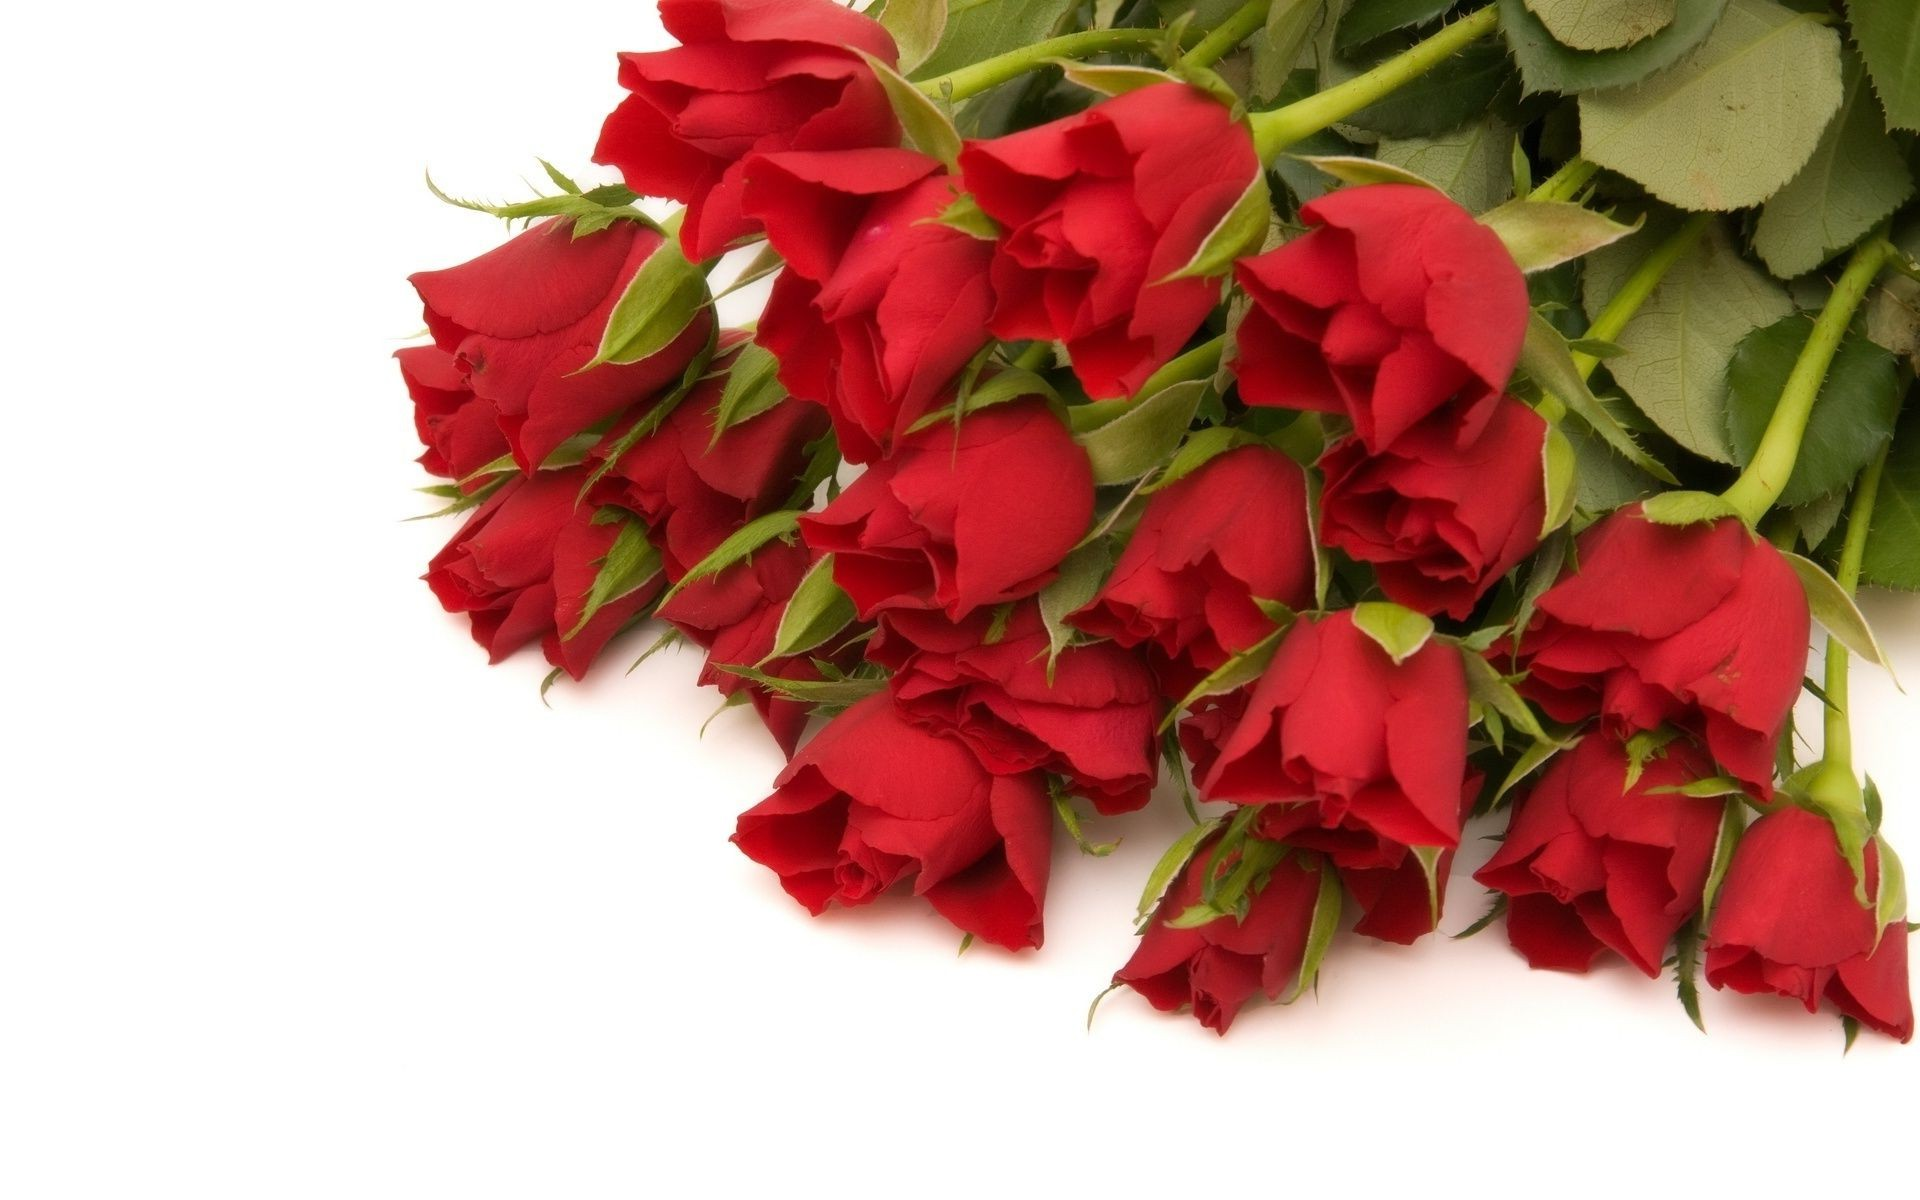 A bouquet of red roses on a white background